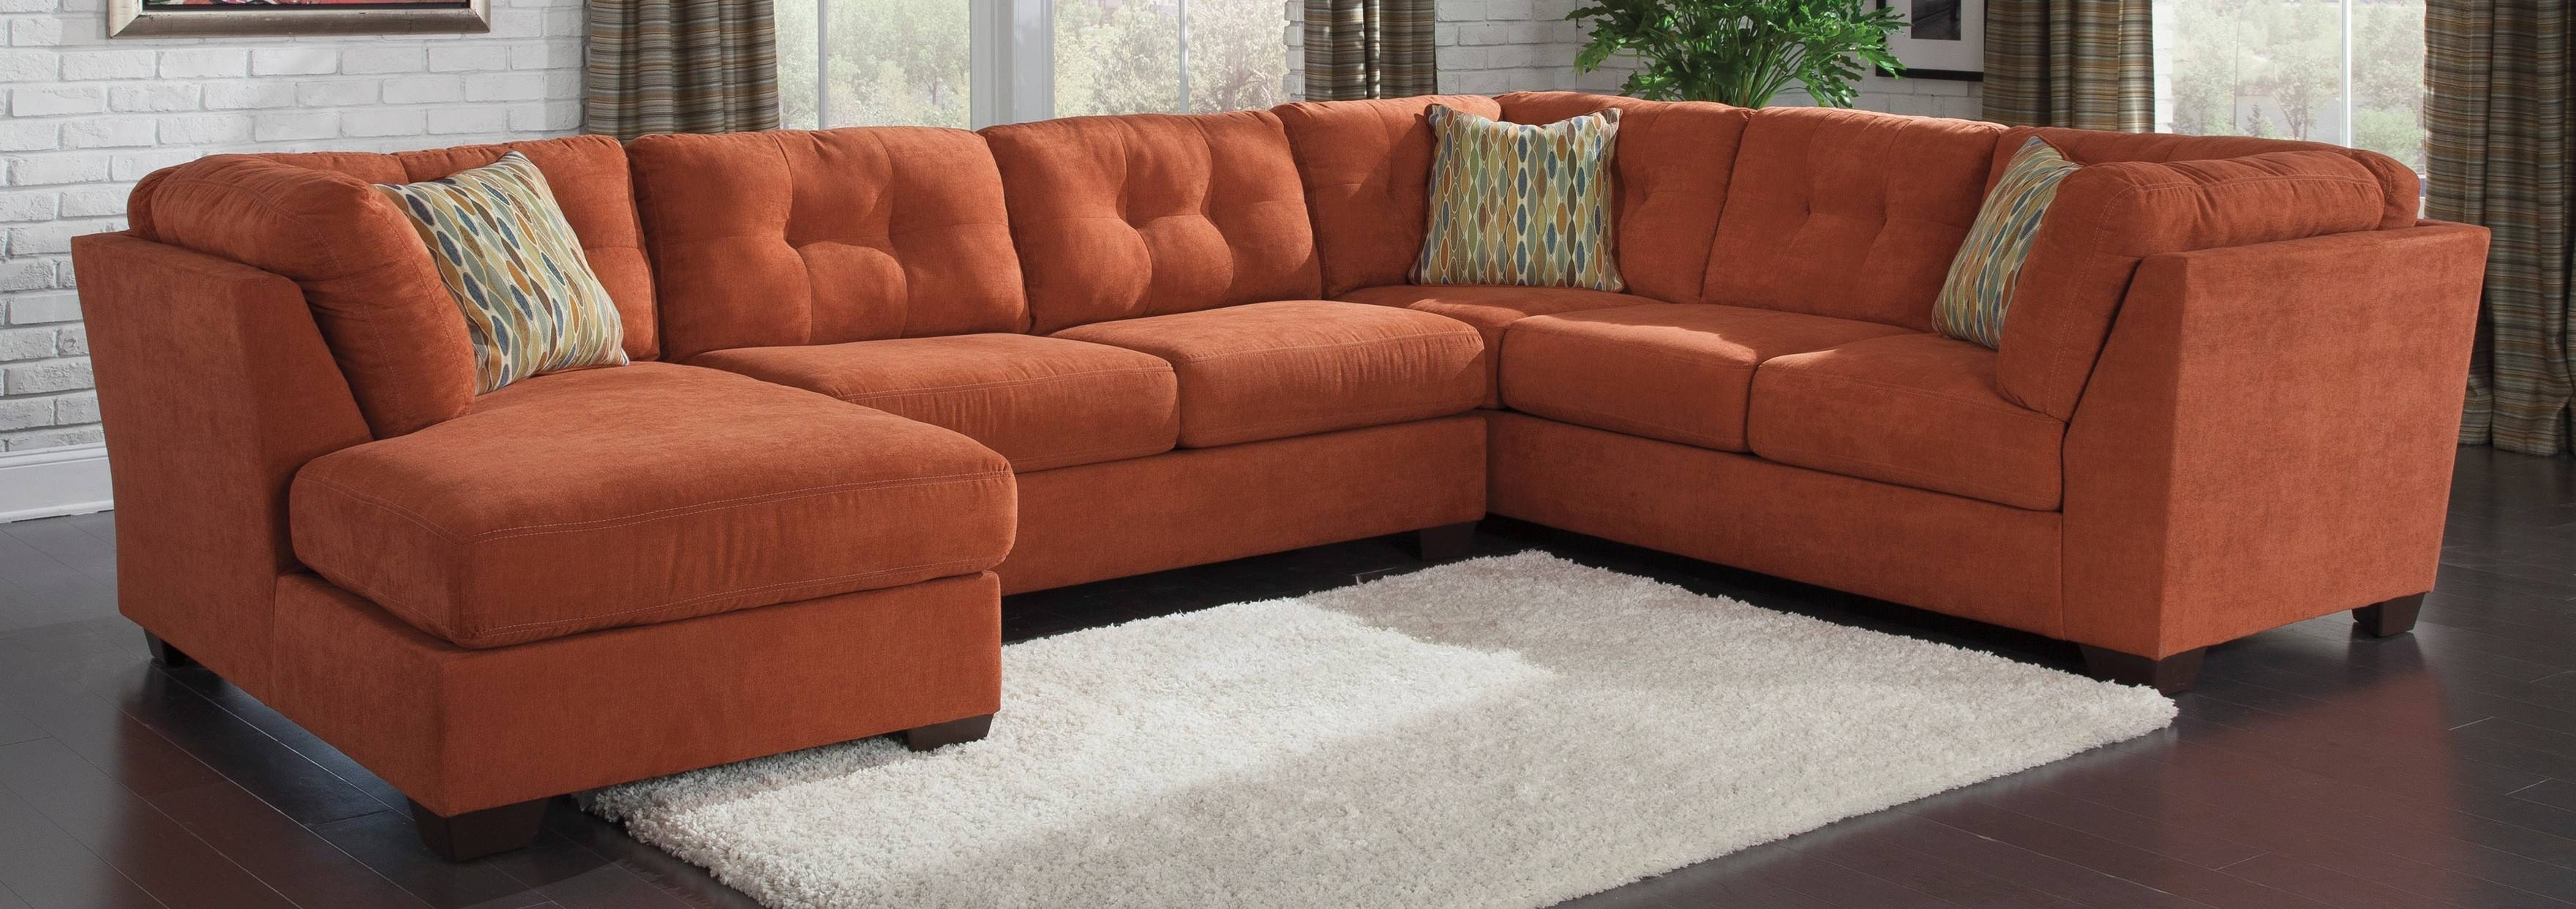 Orange Sofa Bed Ikea Orange Sofa Bed Google Search U2026